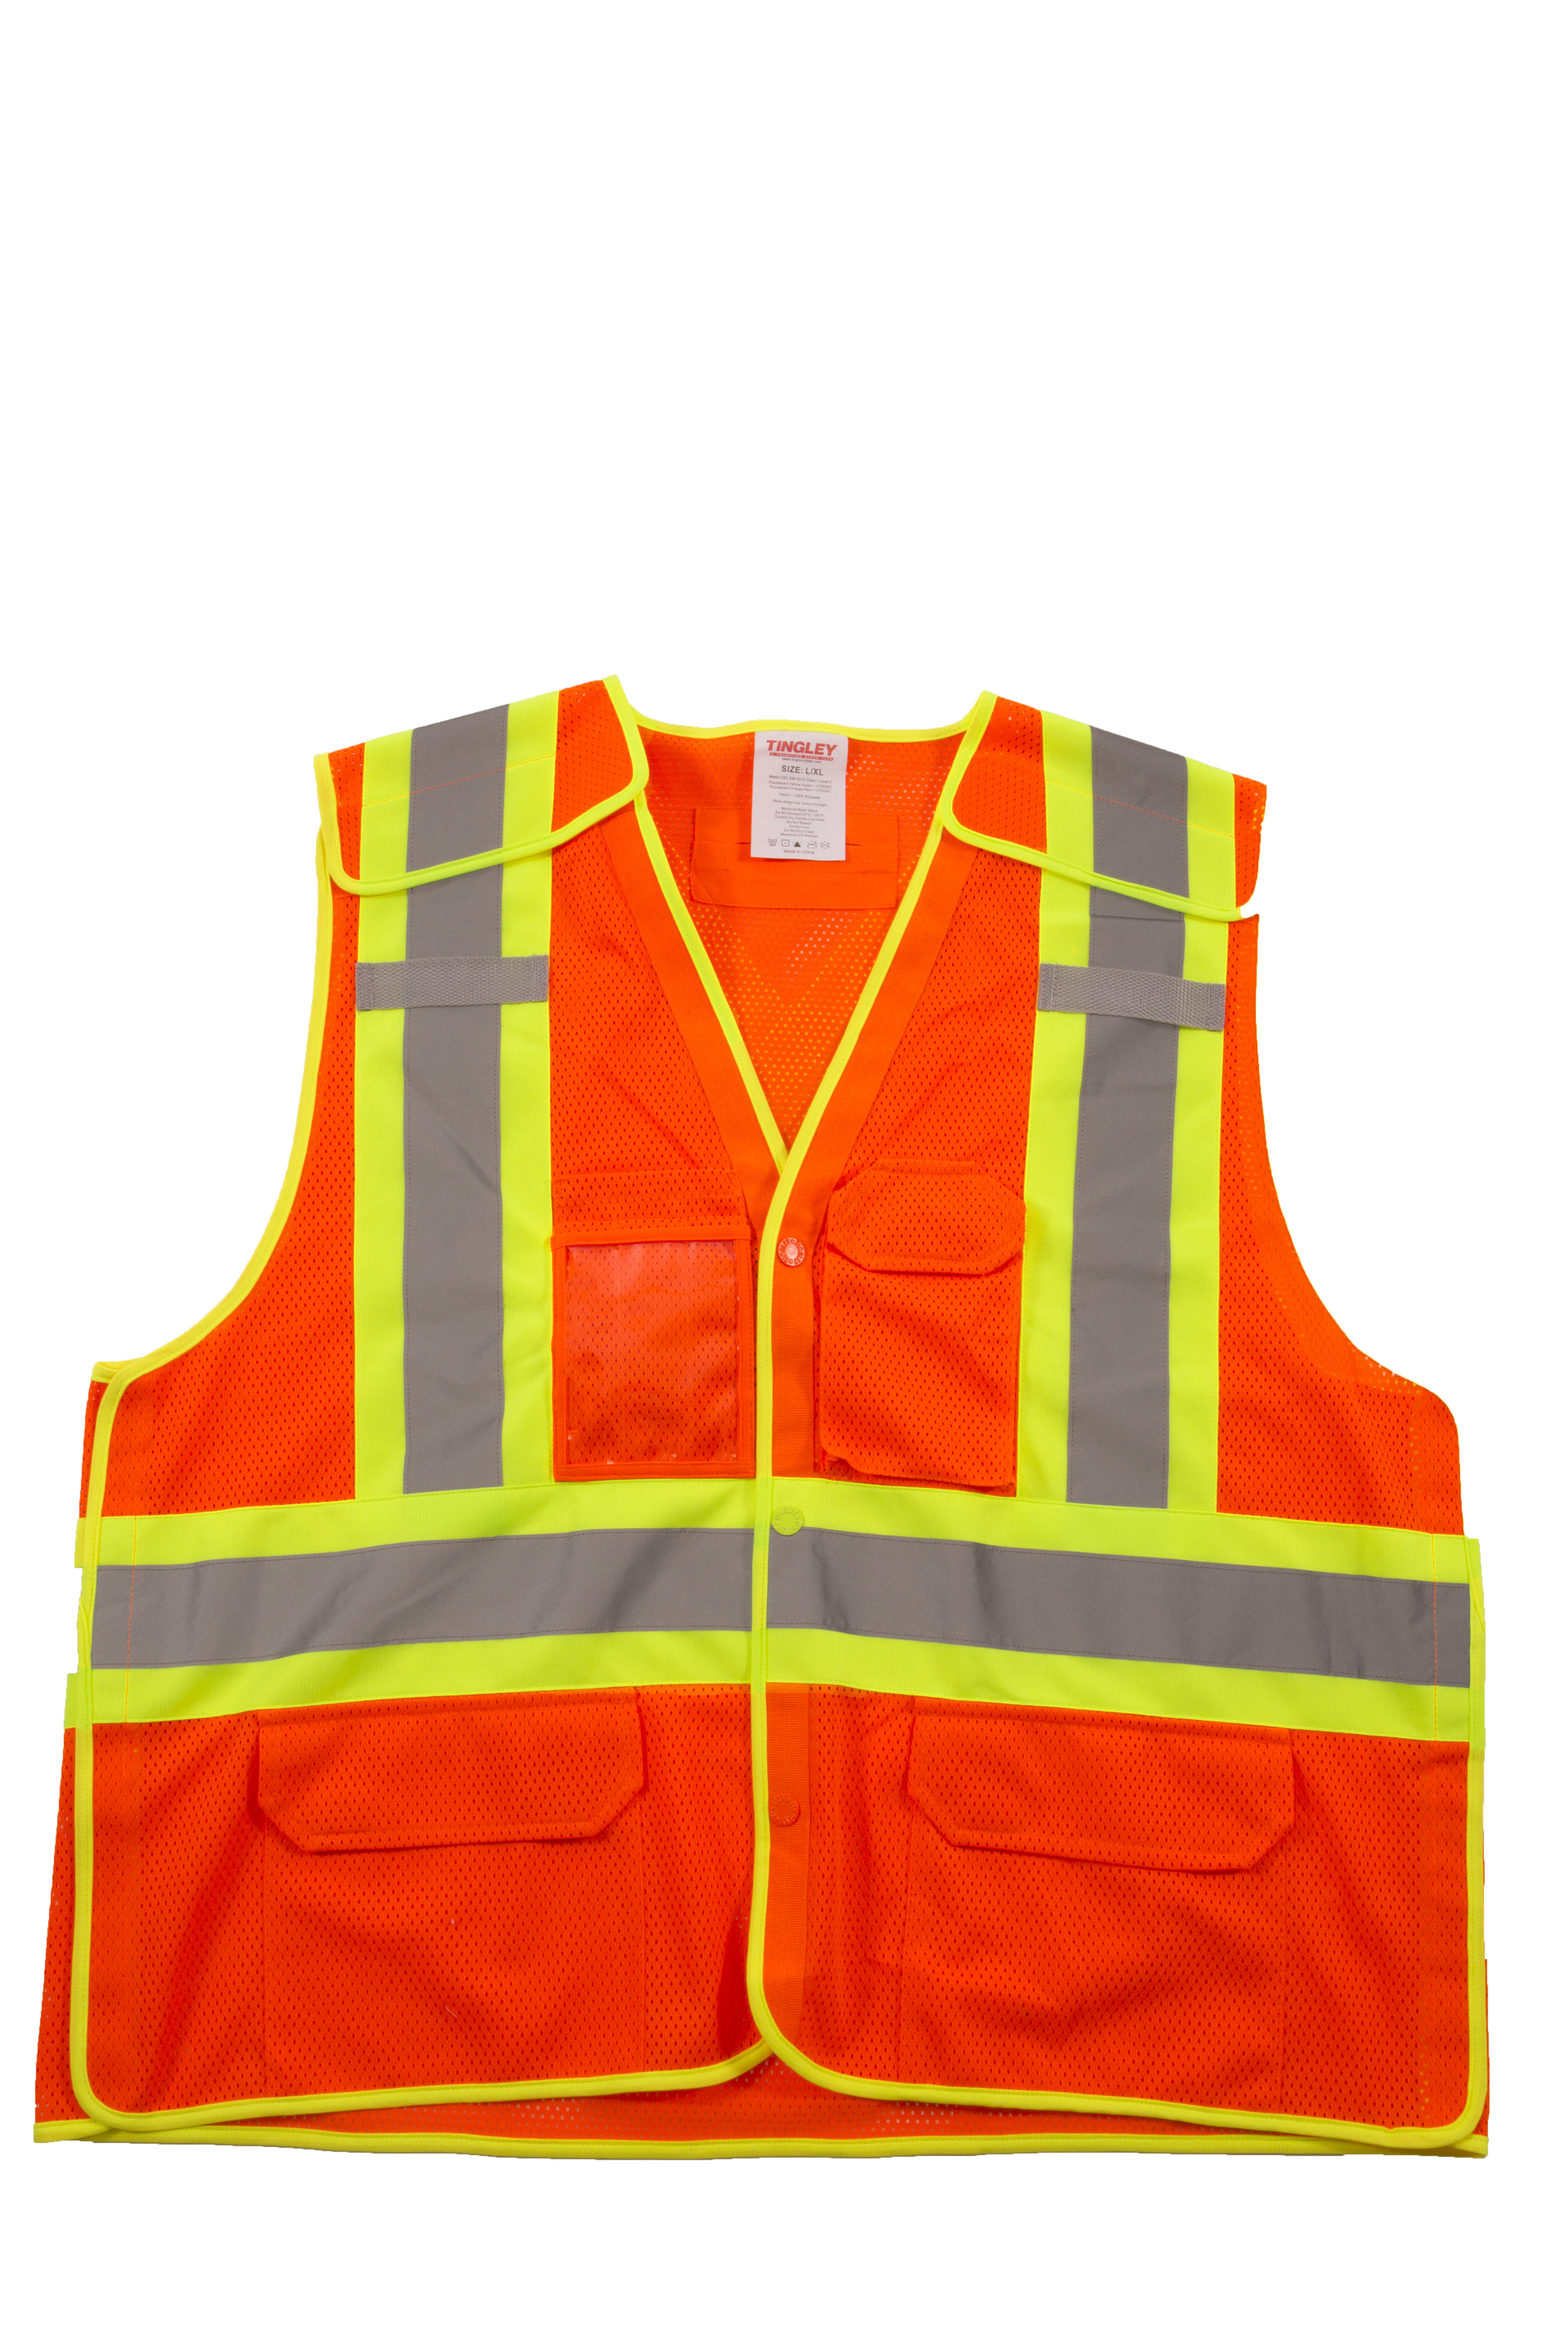 High Visibility Mesh Safety Vest Waistcoat Harness with Reflective Strip Red